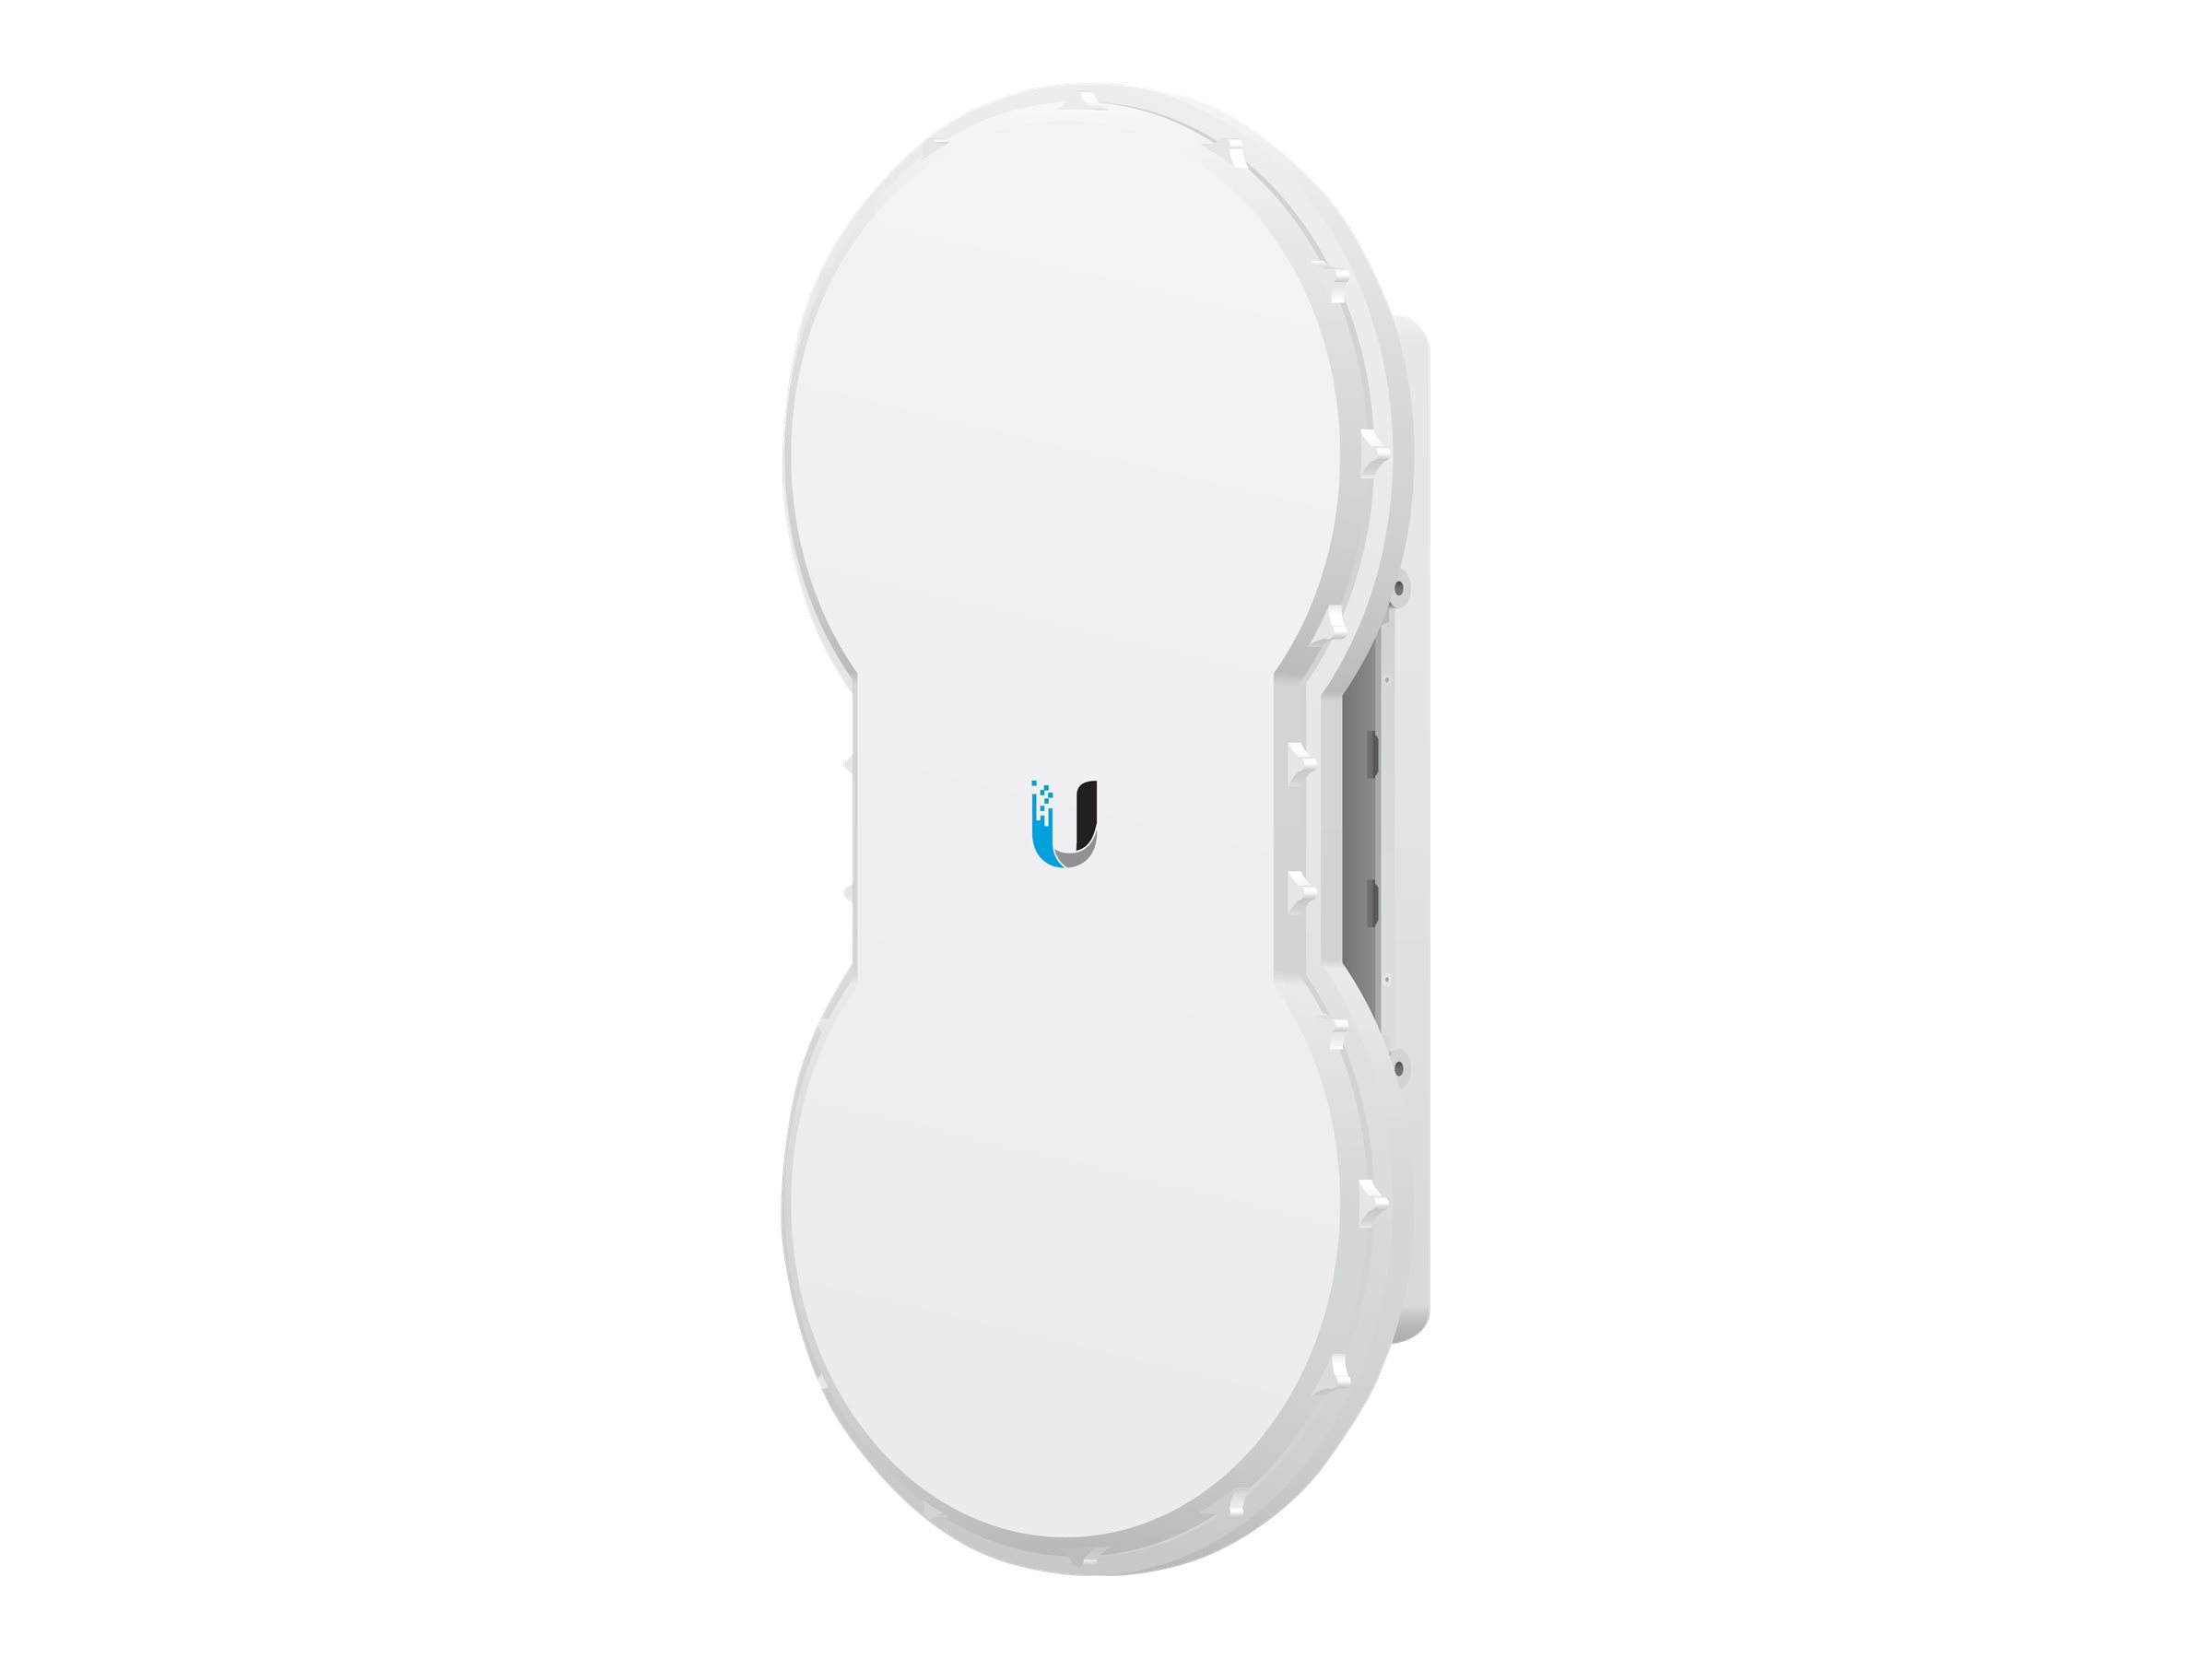 Ubiquiti airFiber 5 - Wireless Bridge - AirFiber - AirFiber